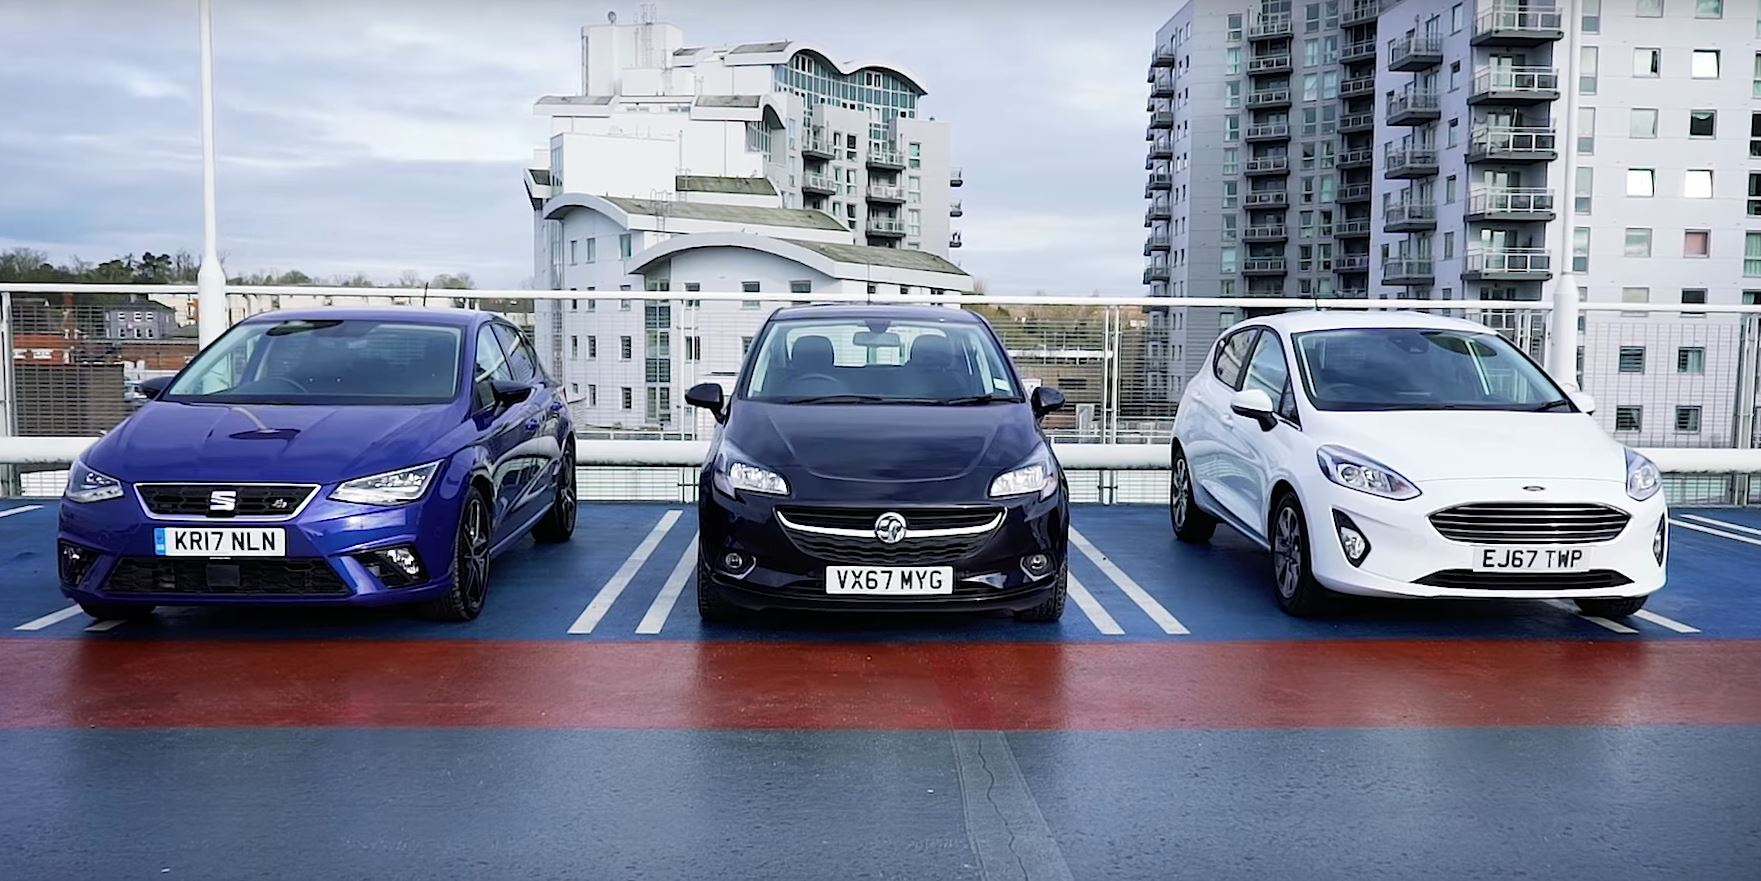 hight resolution of ford fiesta opel corsa and seat ibiza compared from a woman s perspective